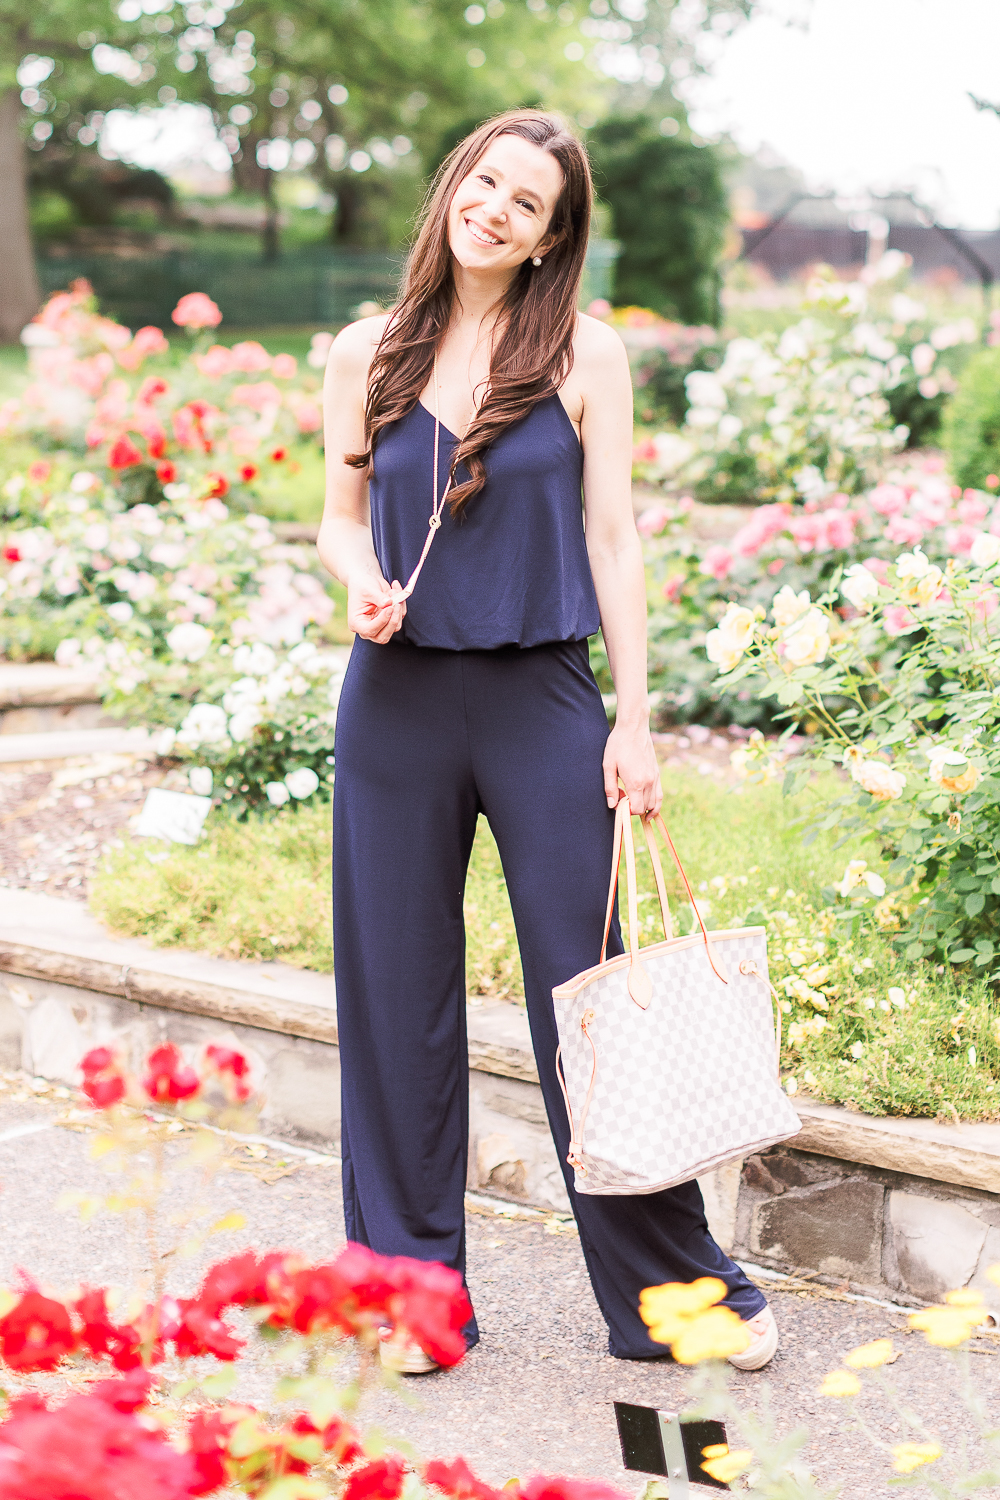 Navy jumpsuit outfit, 10 Preppy 4th of July Outfit Ideas for Women by popular affordable fashion blogger Stephanie Ziajka from Diary of a Debutante